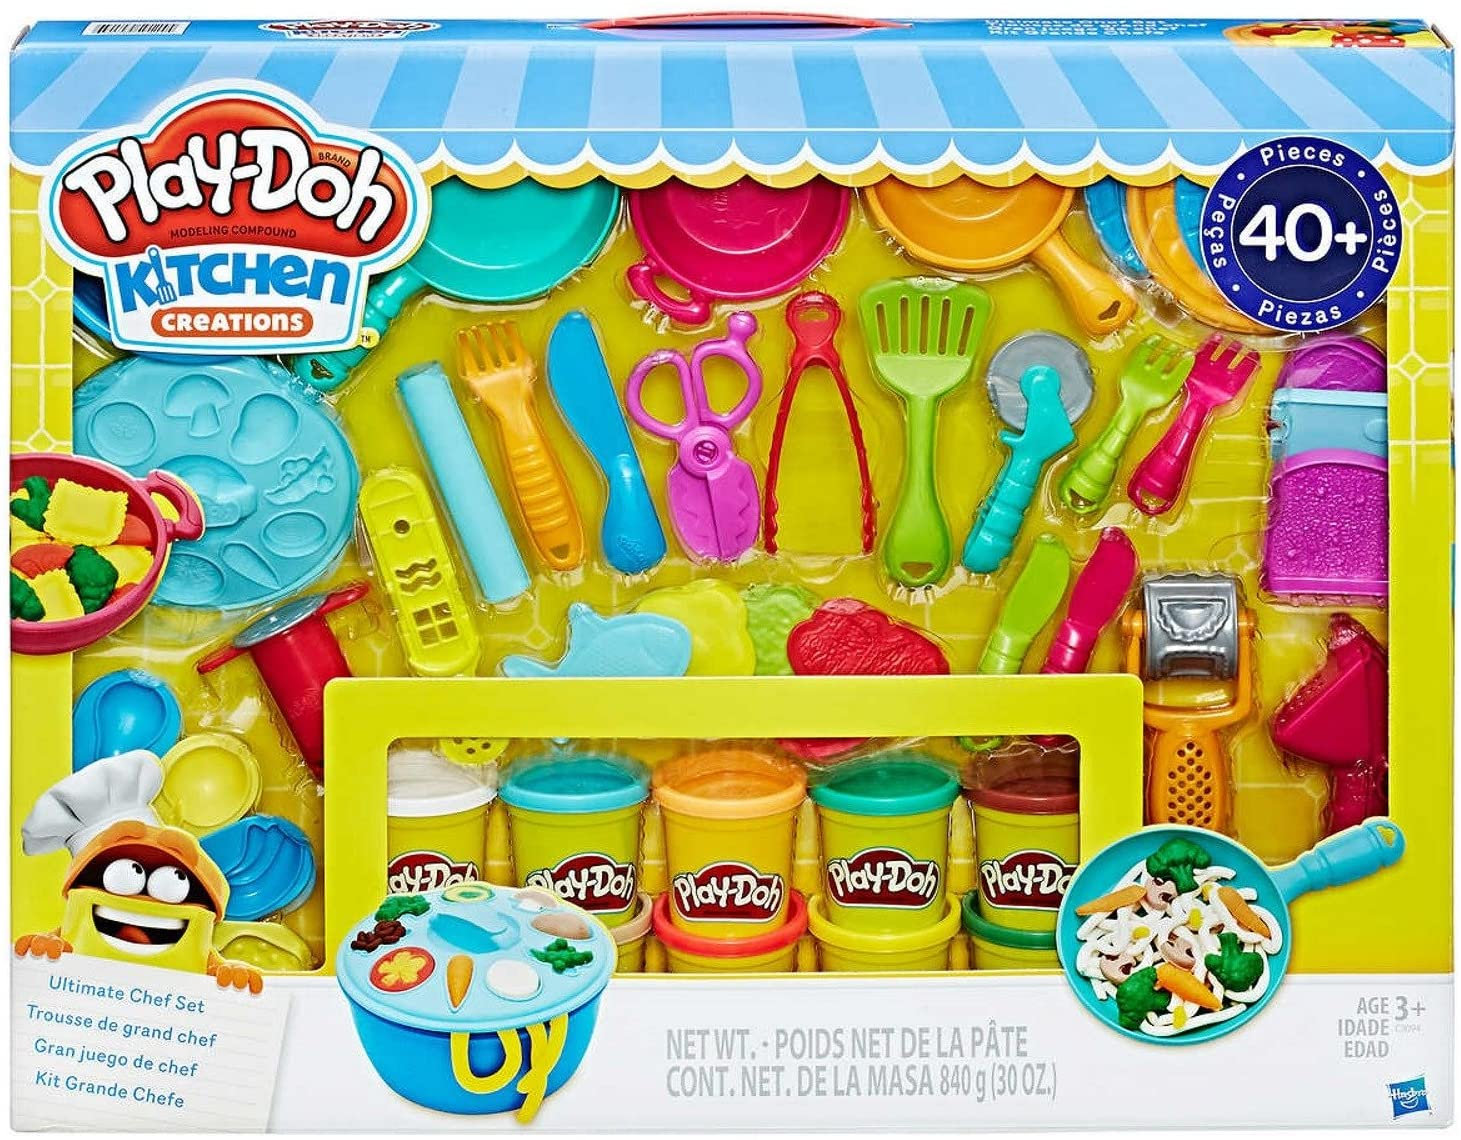 Play Doh Kitchen Creations Ultimate Chef Set Create And Make Meals With Play Doh Kitchen Tools 40 Pieces 10 Cans Of Play Doh Walmart Com Walmart Com